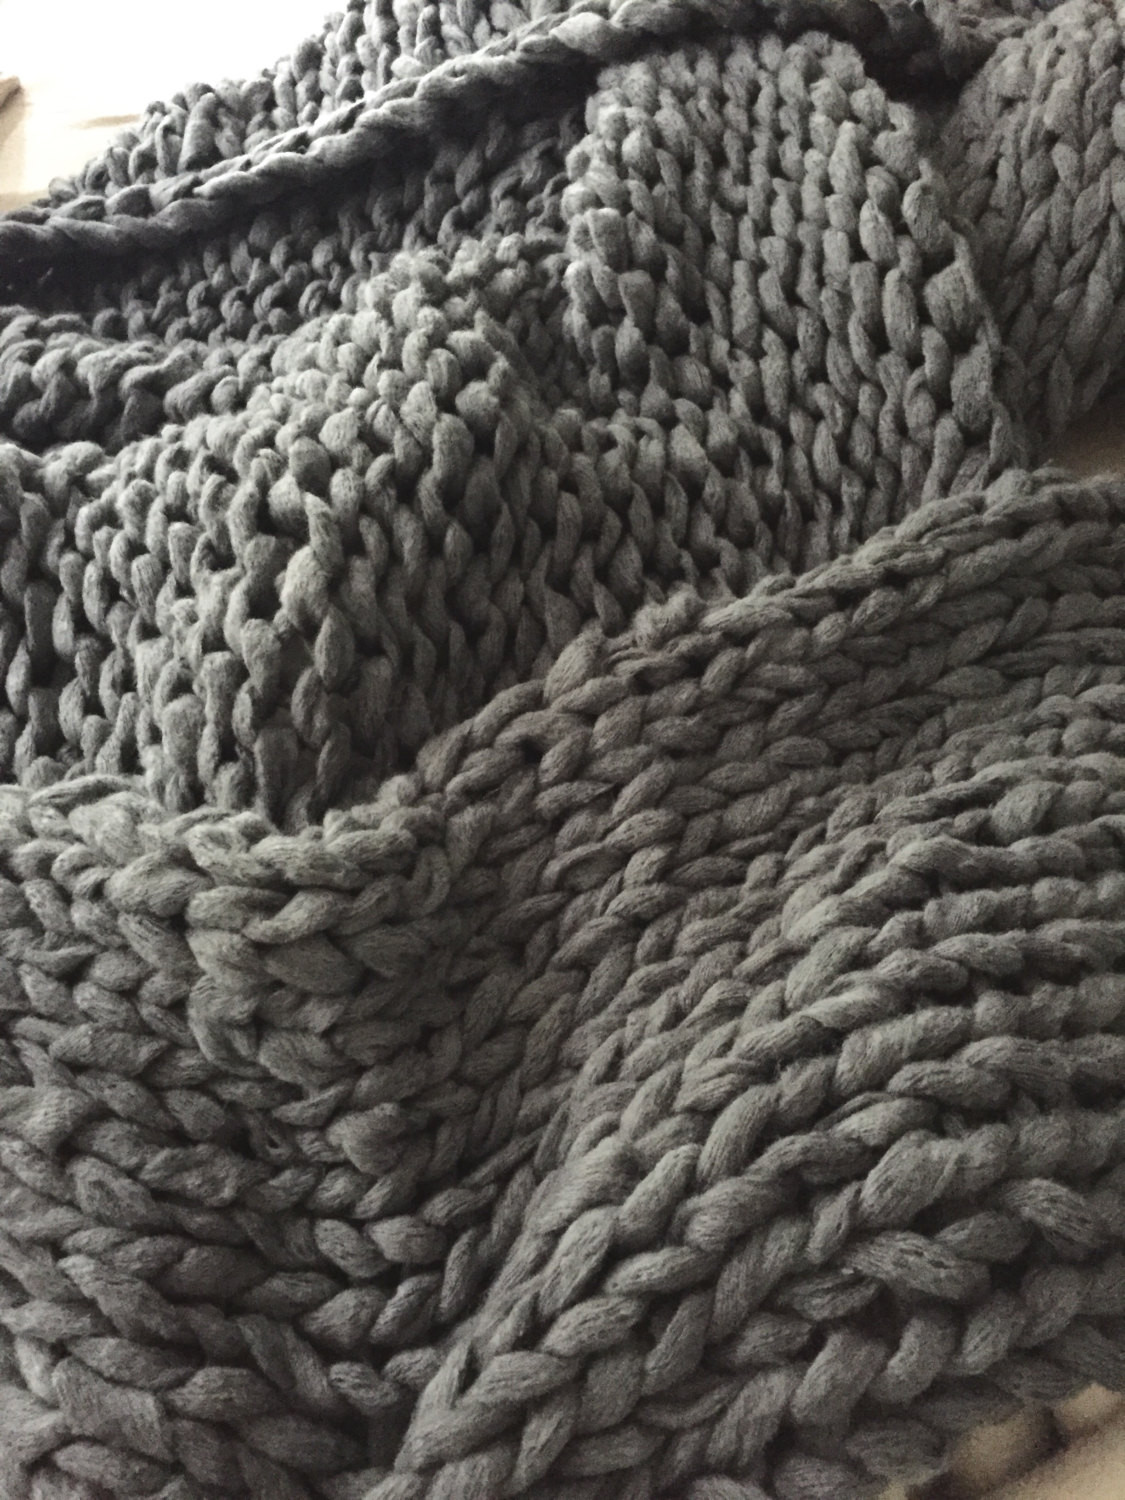 Chunky Knit Throw Best Of Chunky Knit Blanket Super Bulky Blanket Giant Knit Blanket Of Superb 50 Pics Chunky Knit Throw